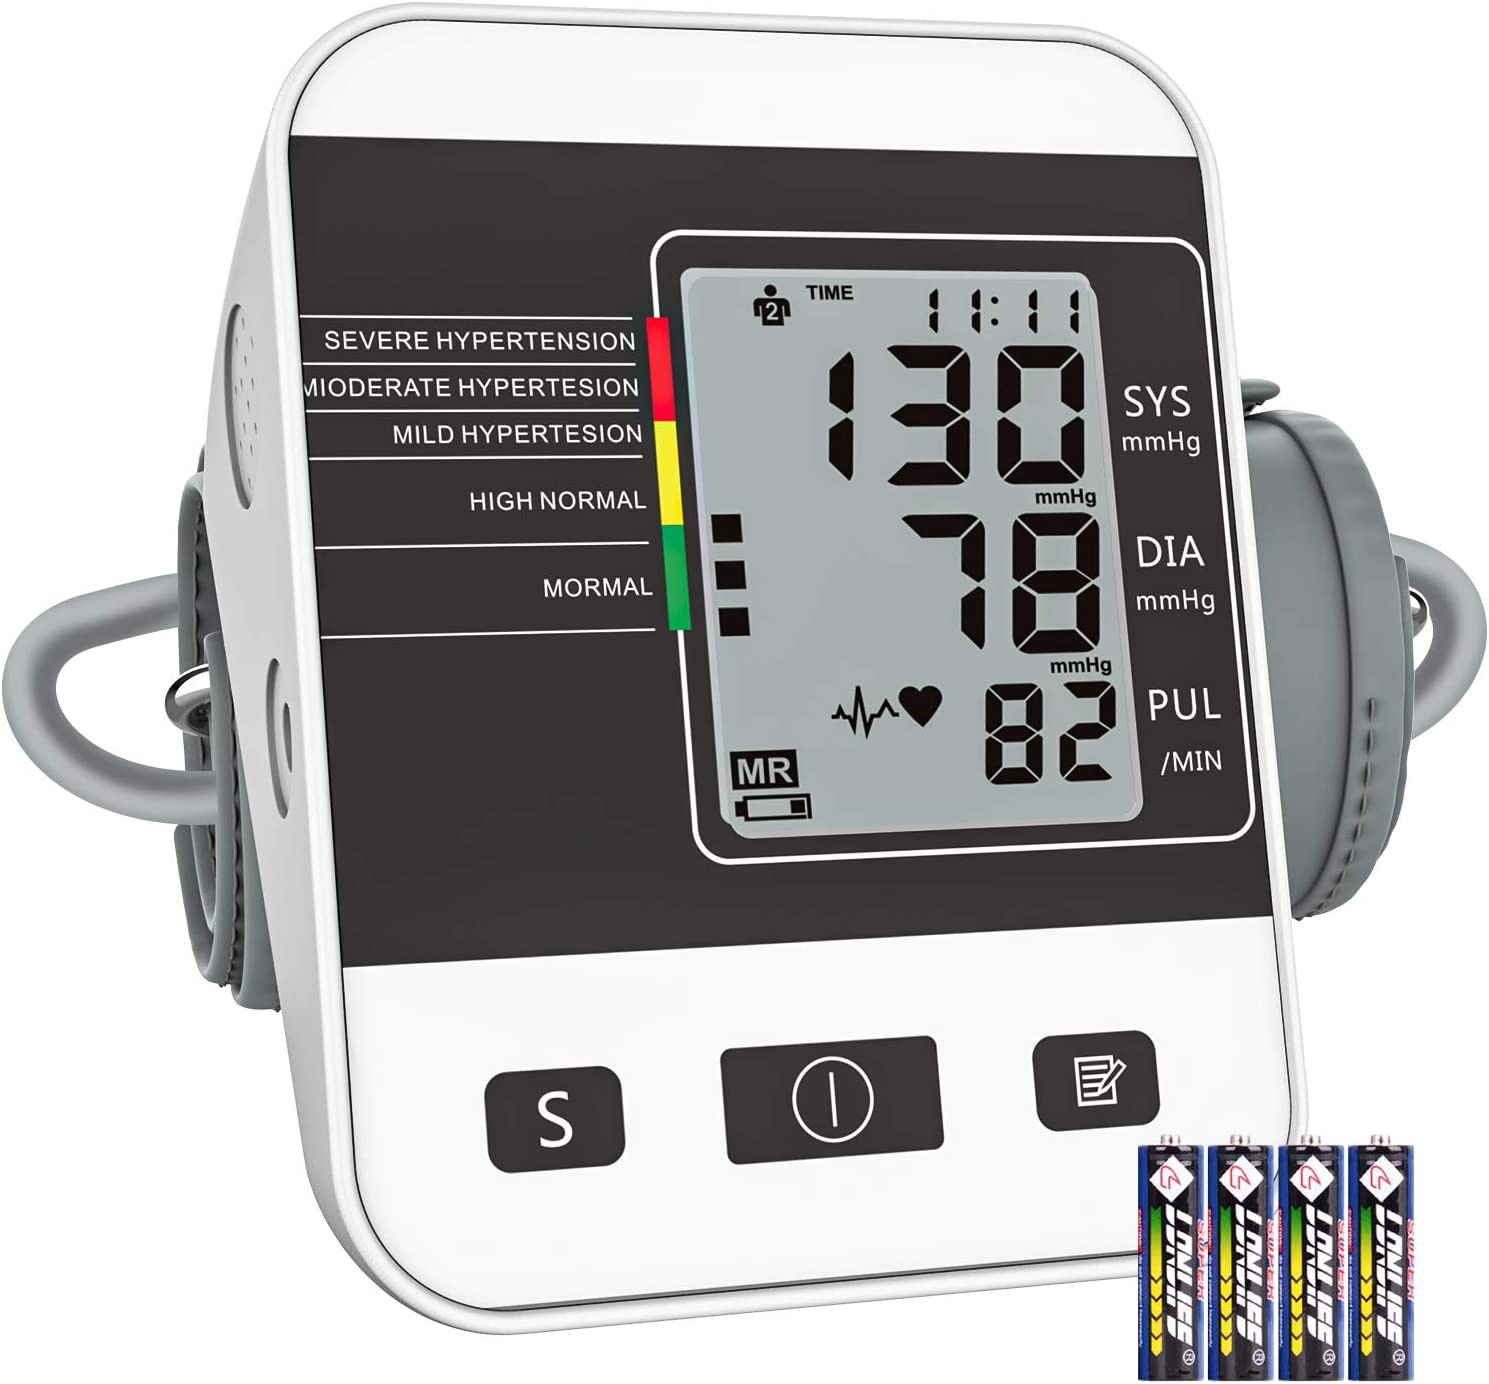 Blood Pressure Machine 【2020 Update】, Upper Arm Blood Pressure Monitor for Home Use, Automatic Measure BP and Calculate Average, Heart Rate Pulse, 2 User Mode and 198 Memories, Include Batteries